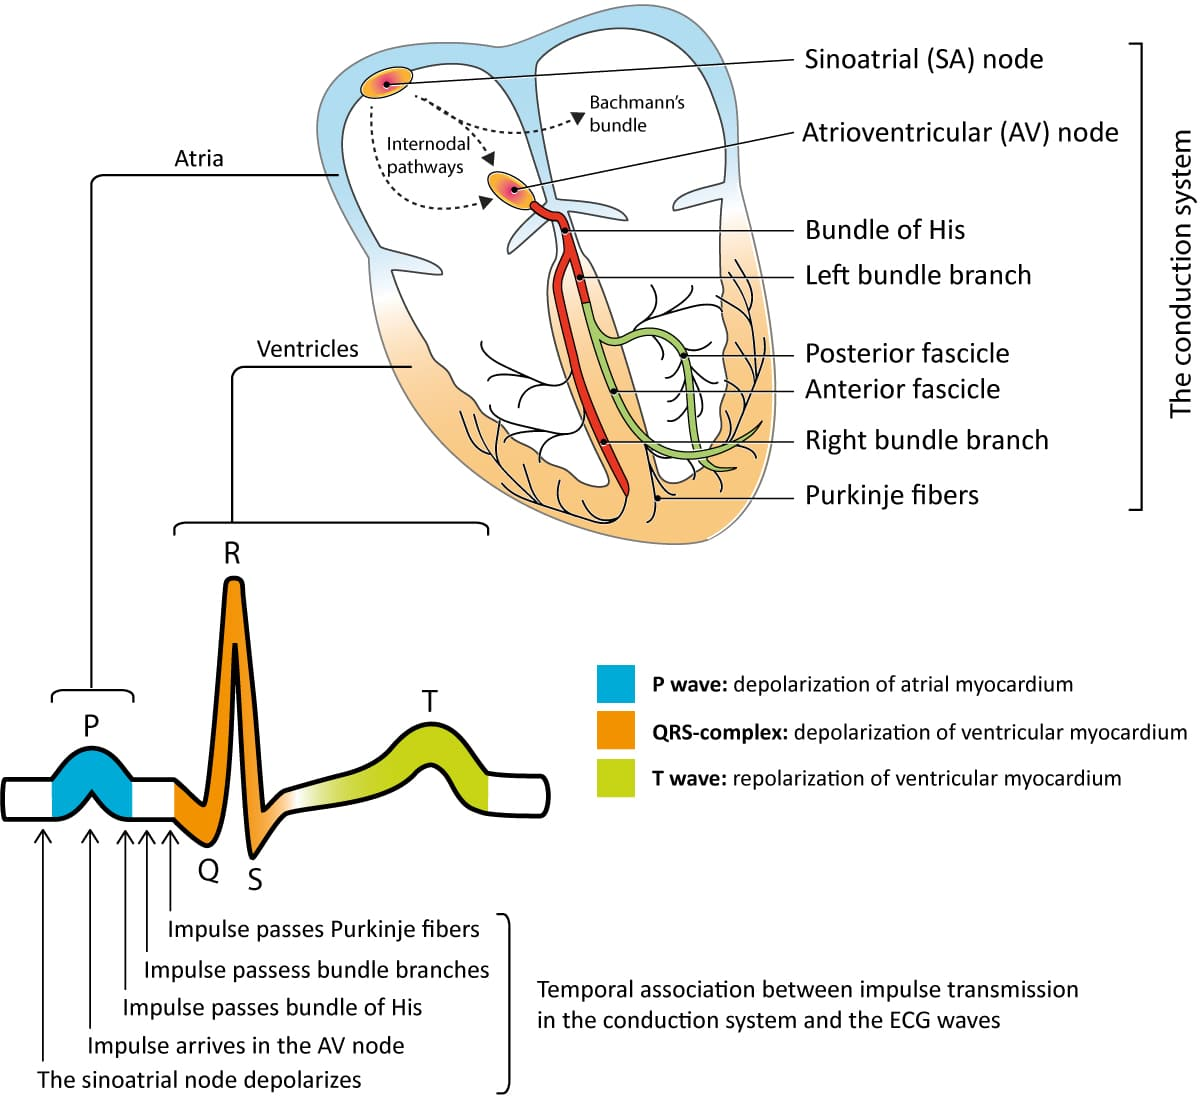 Overview Of The Atria Ventricles Conduction System And